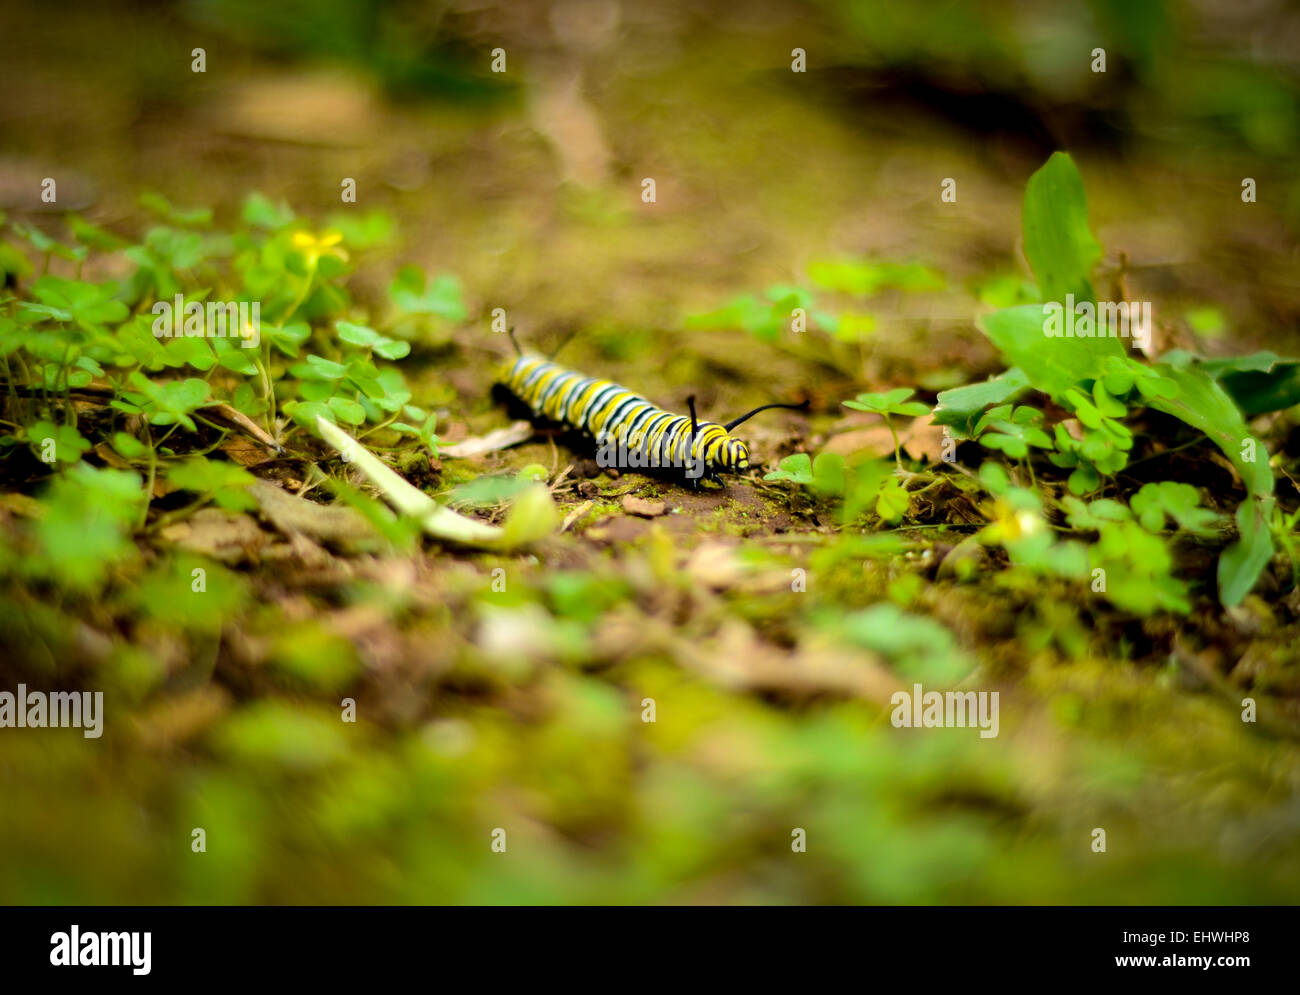 A Bright Yellow And Black Caterpillar On Jungle Floor (Shallow DoF)